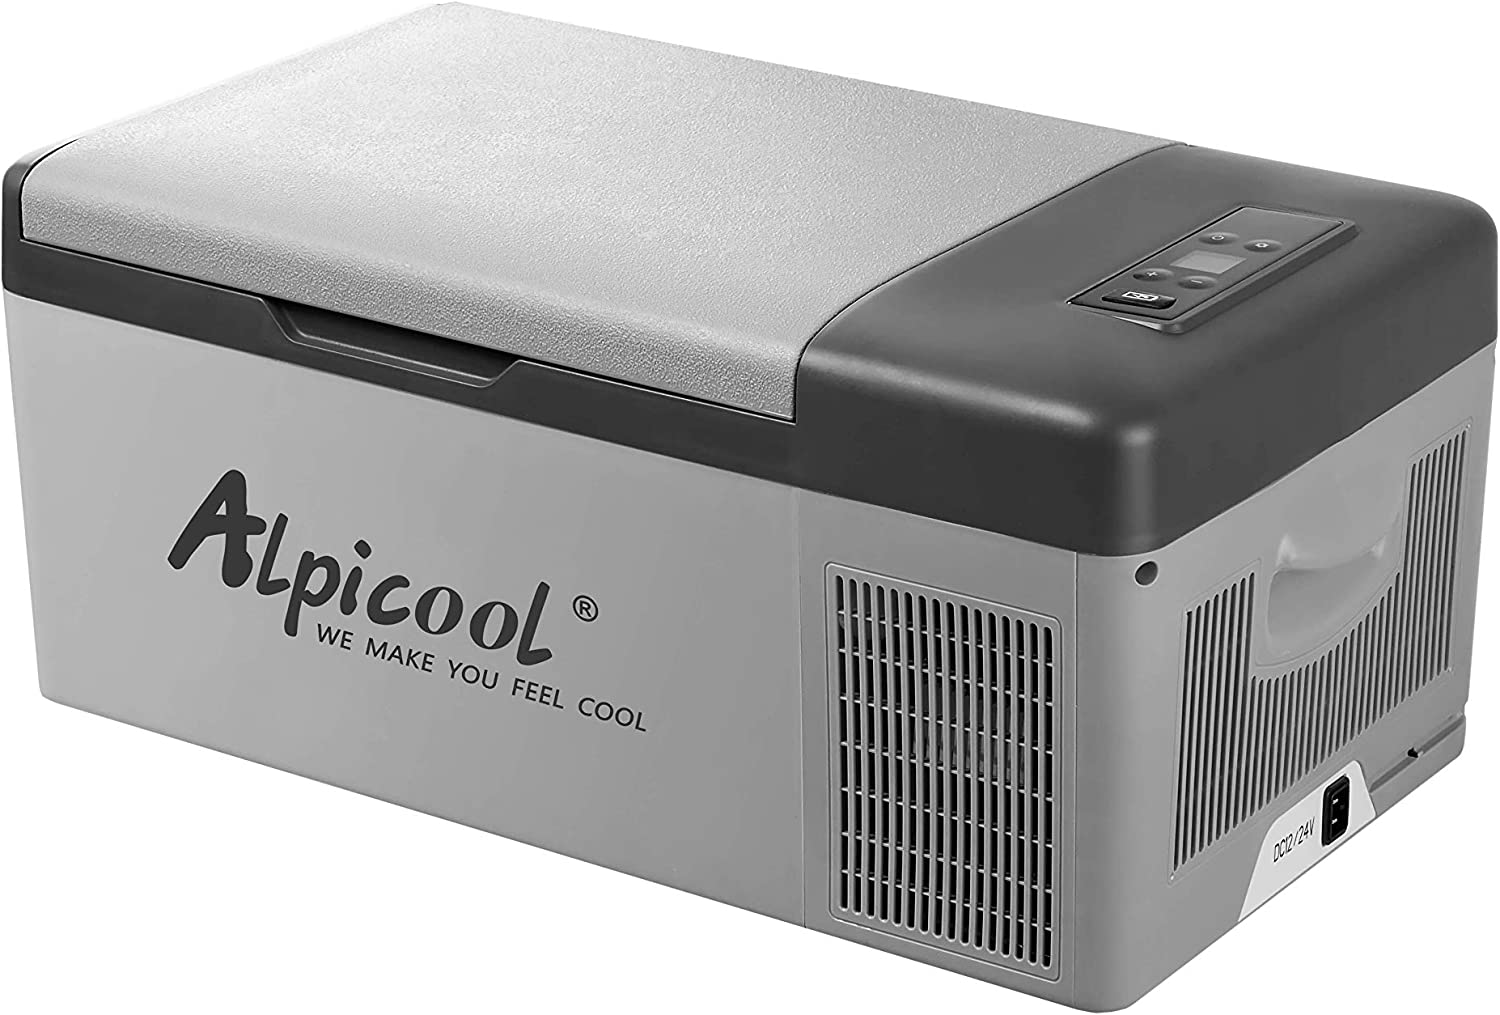 Alpicool C15 Portable Refrigerator 16 Quart 15 Liter Vehicle, Car, Truck, RV, Boat, Mini fridge freezer for Driving, Travel, Fishing, Outdoor and Home use -12 24V DC and 110-240 AC